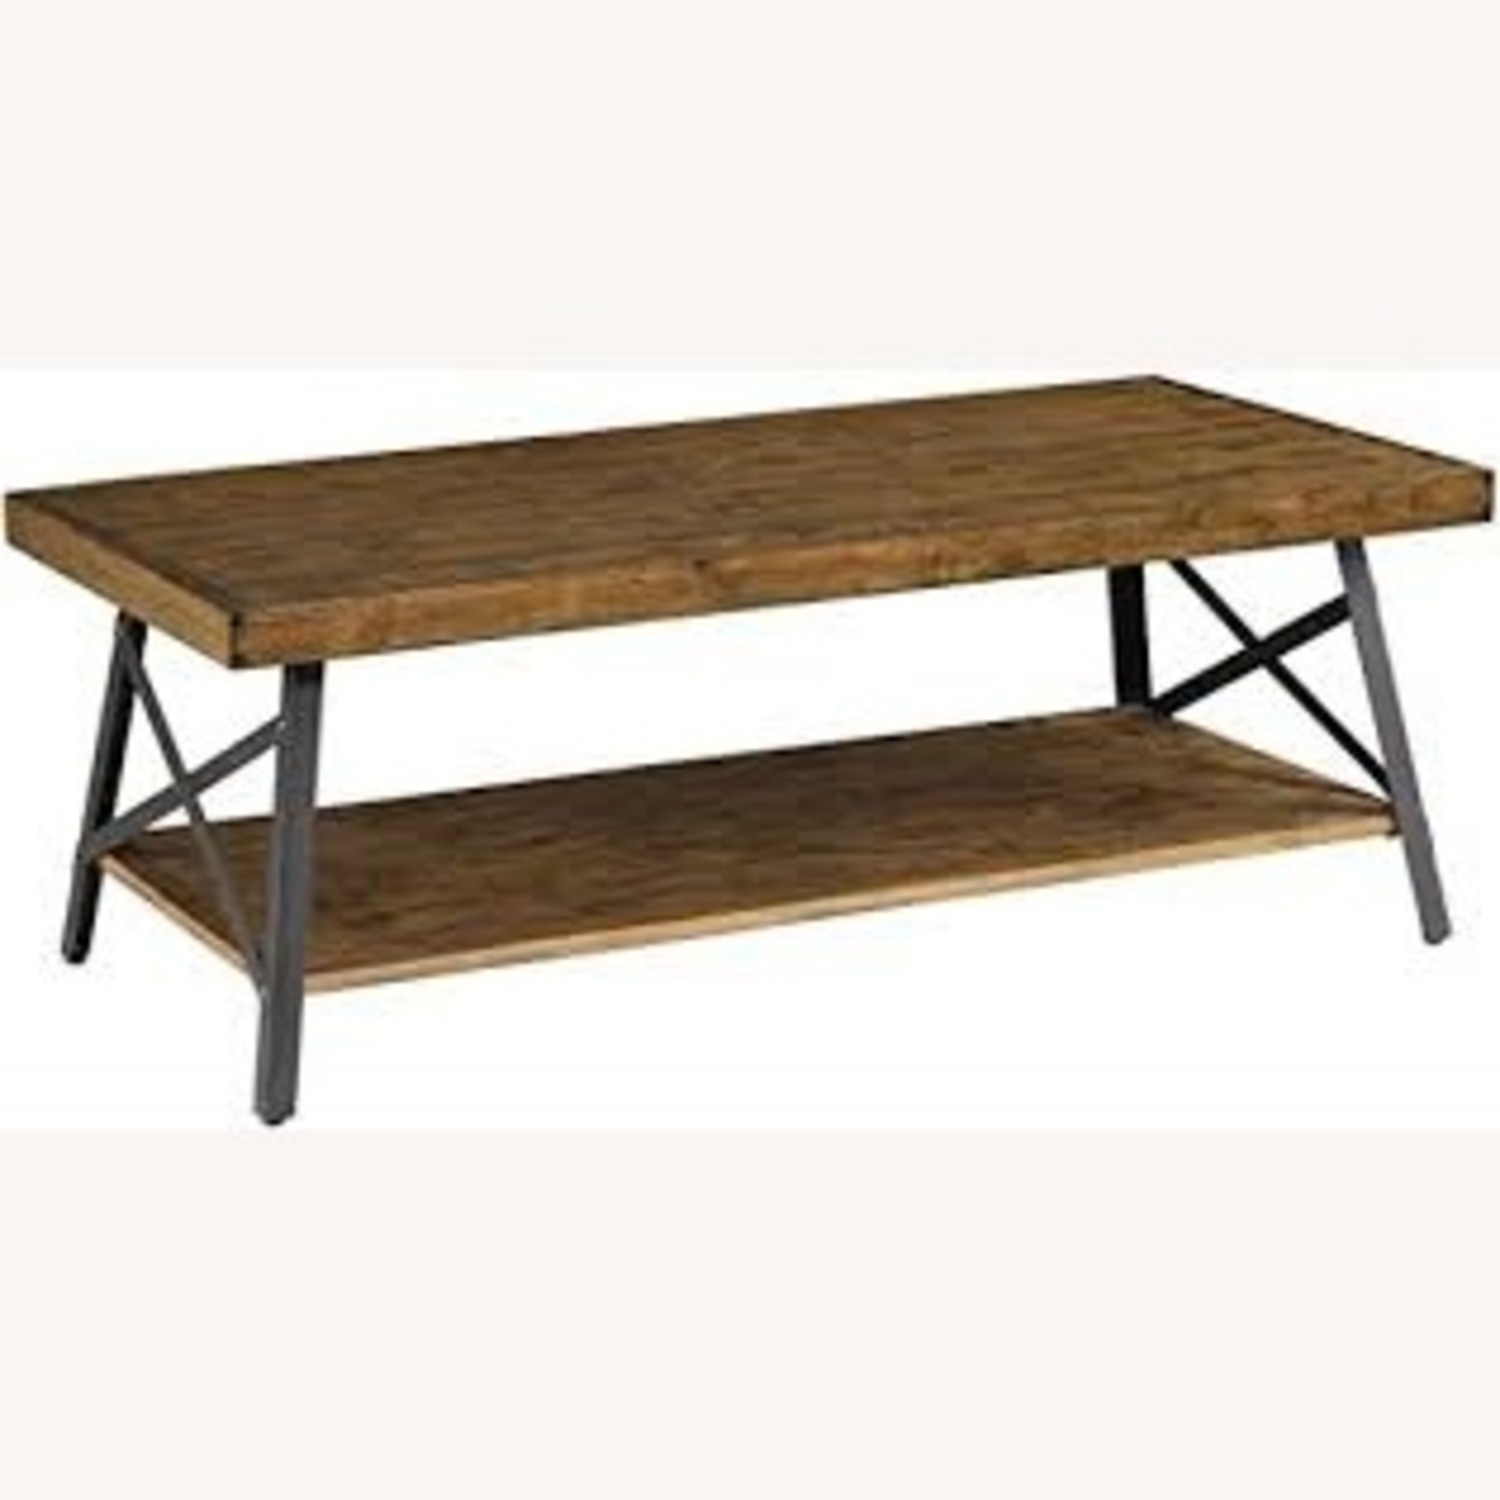 Reclaimed Wood Coffee Table - image-3